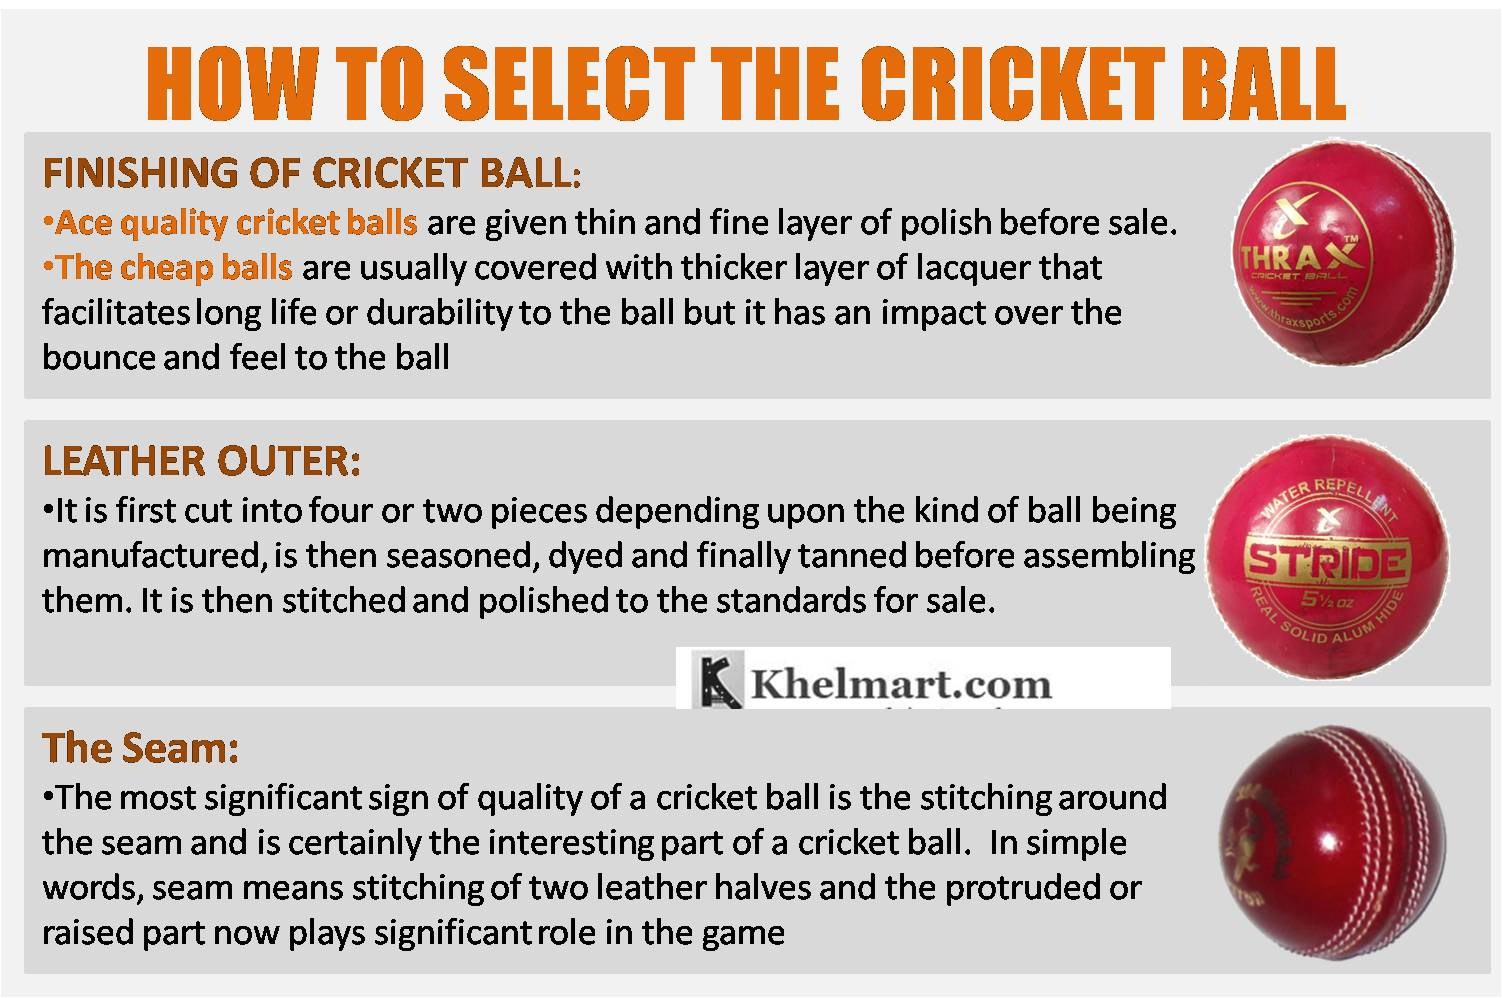 HOW_TO_SELECT_THE_CRICKET_BALL.jpg